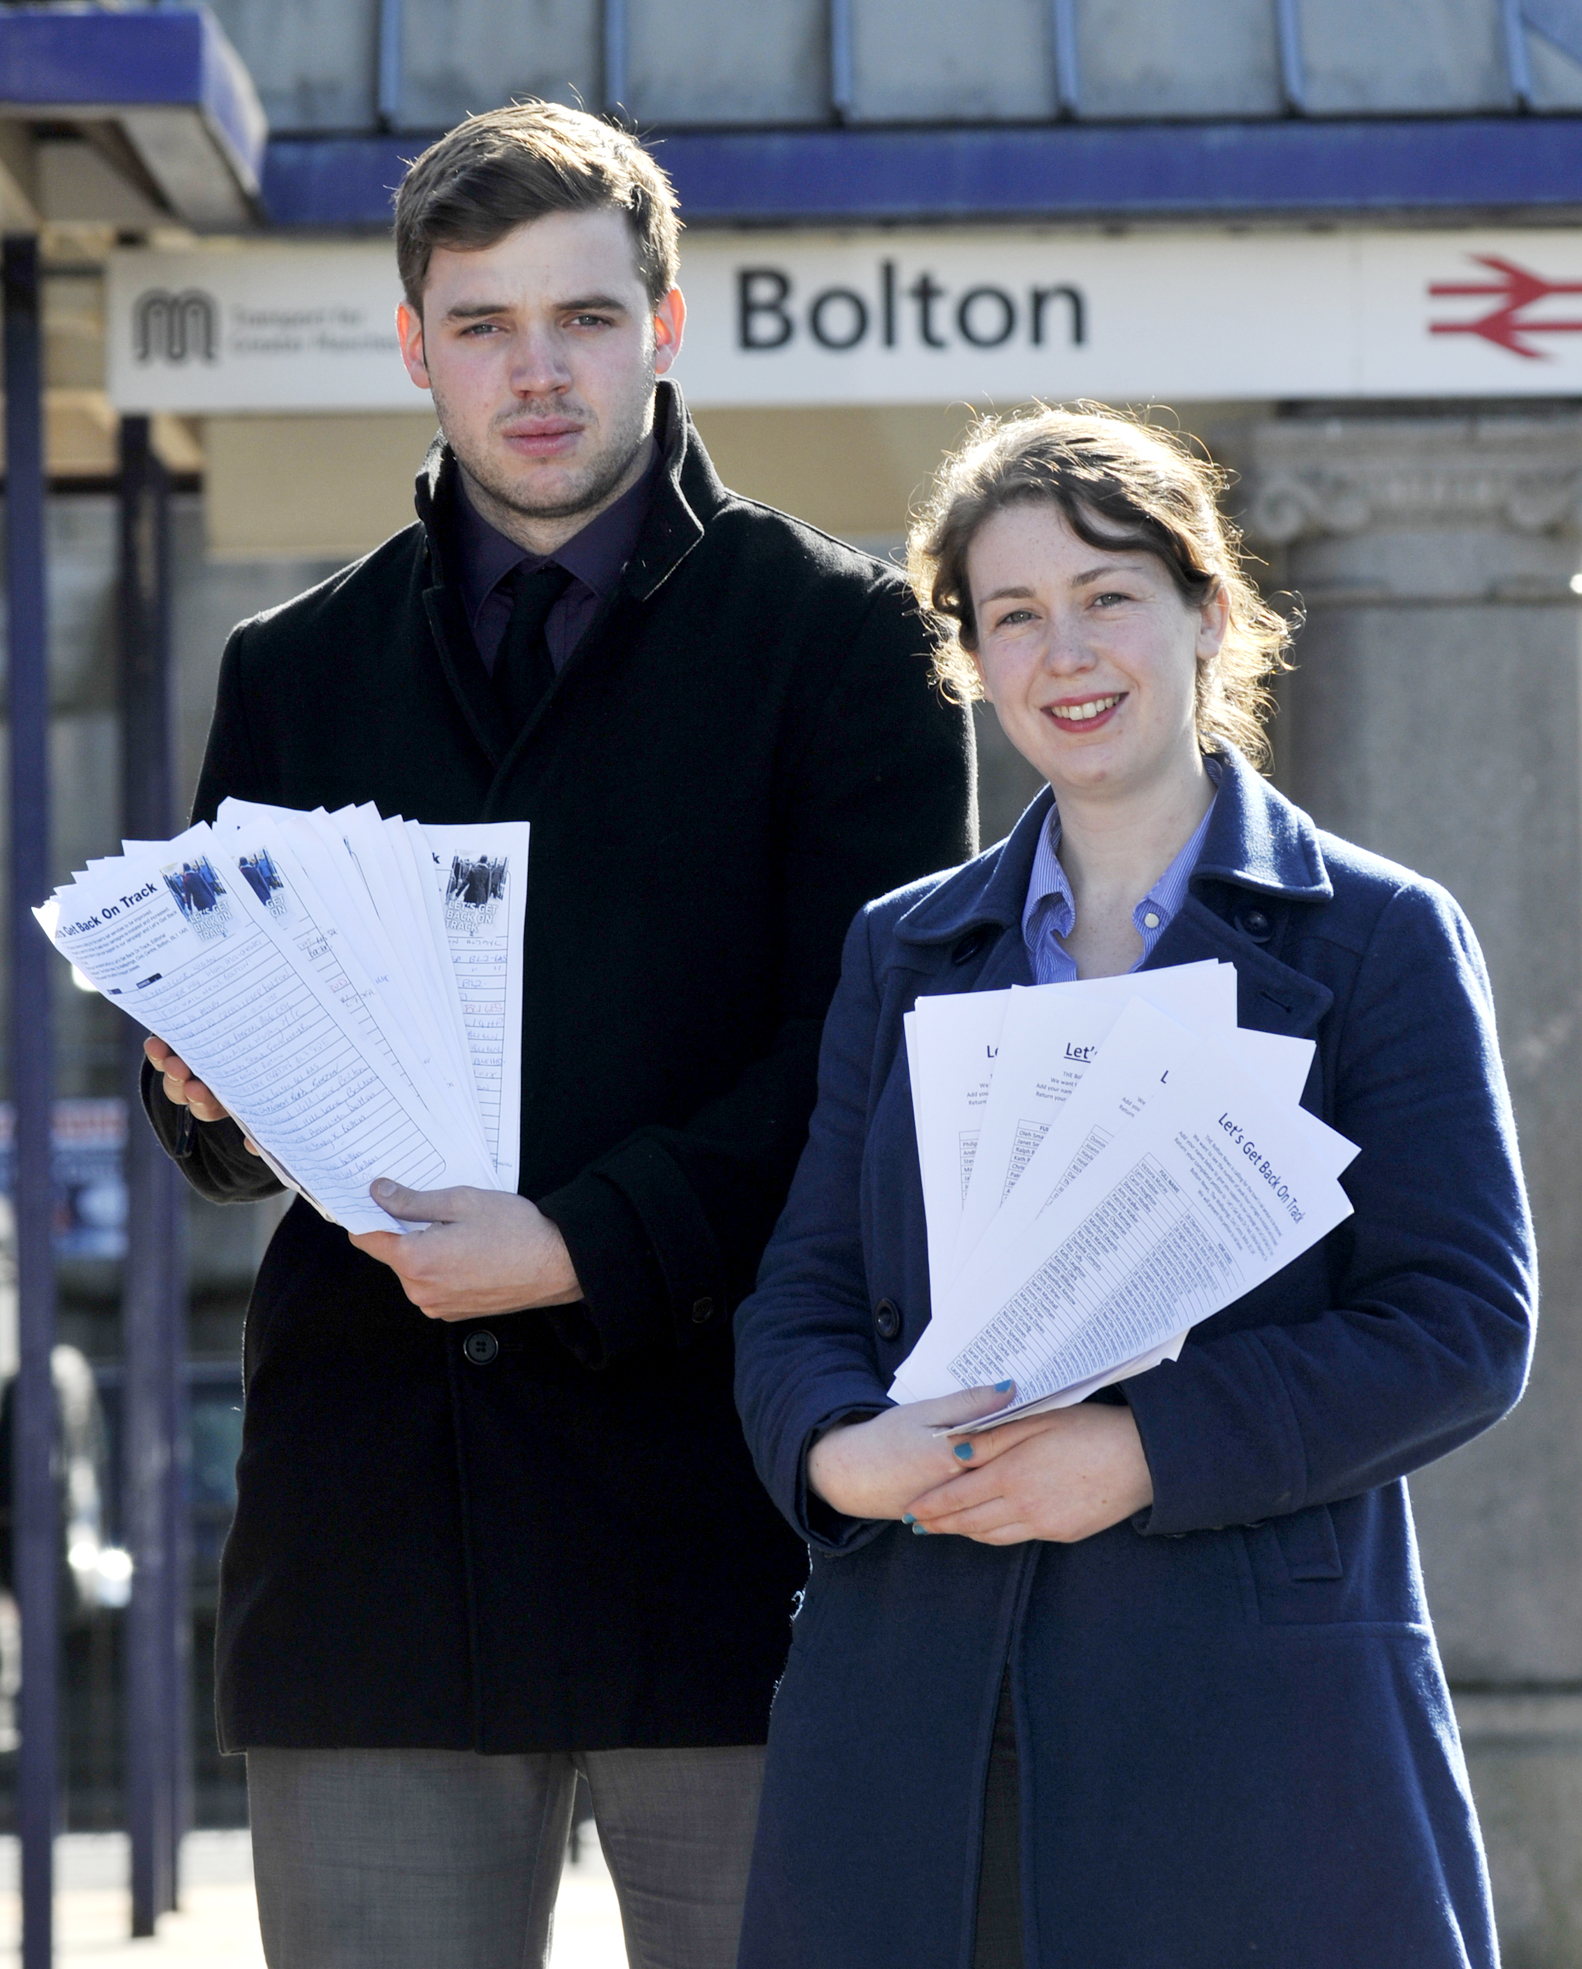 Our train petition going to Downing Street tomorrow